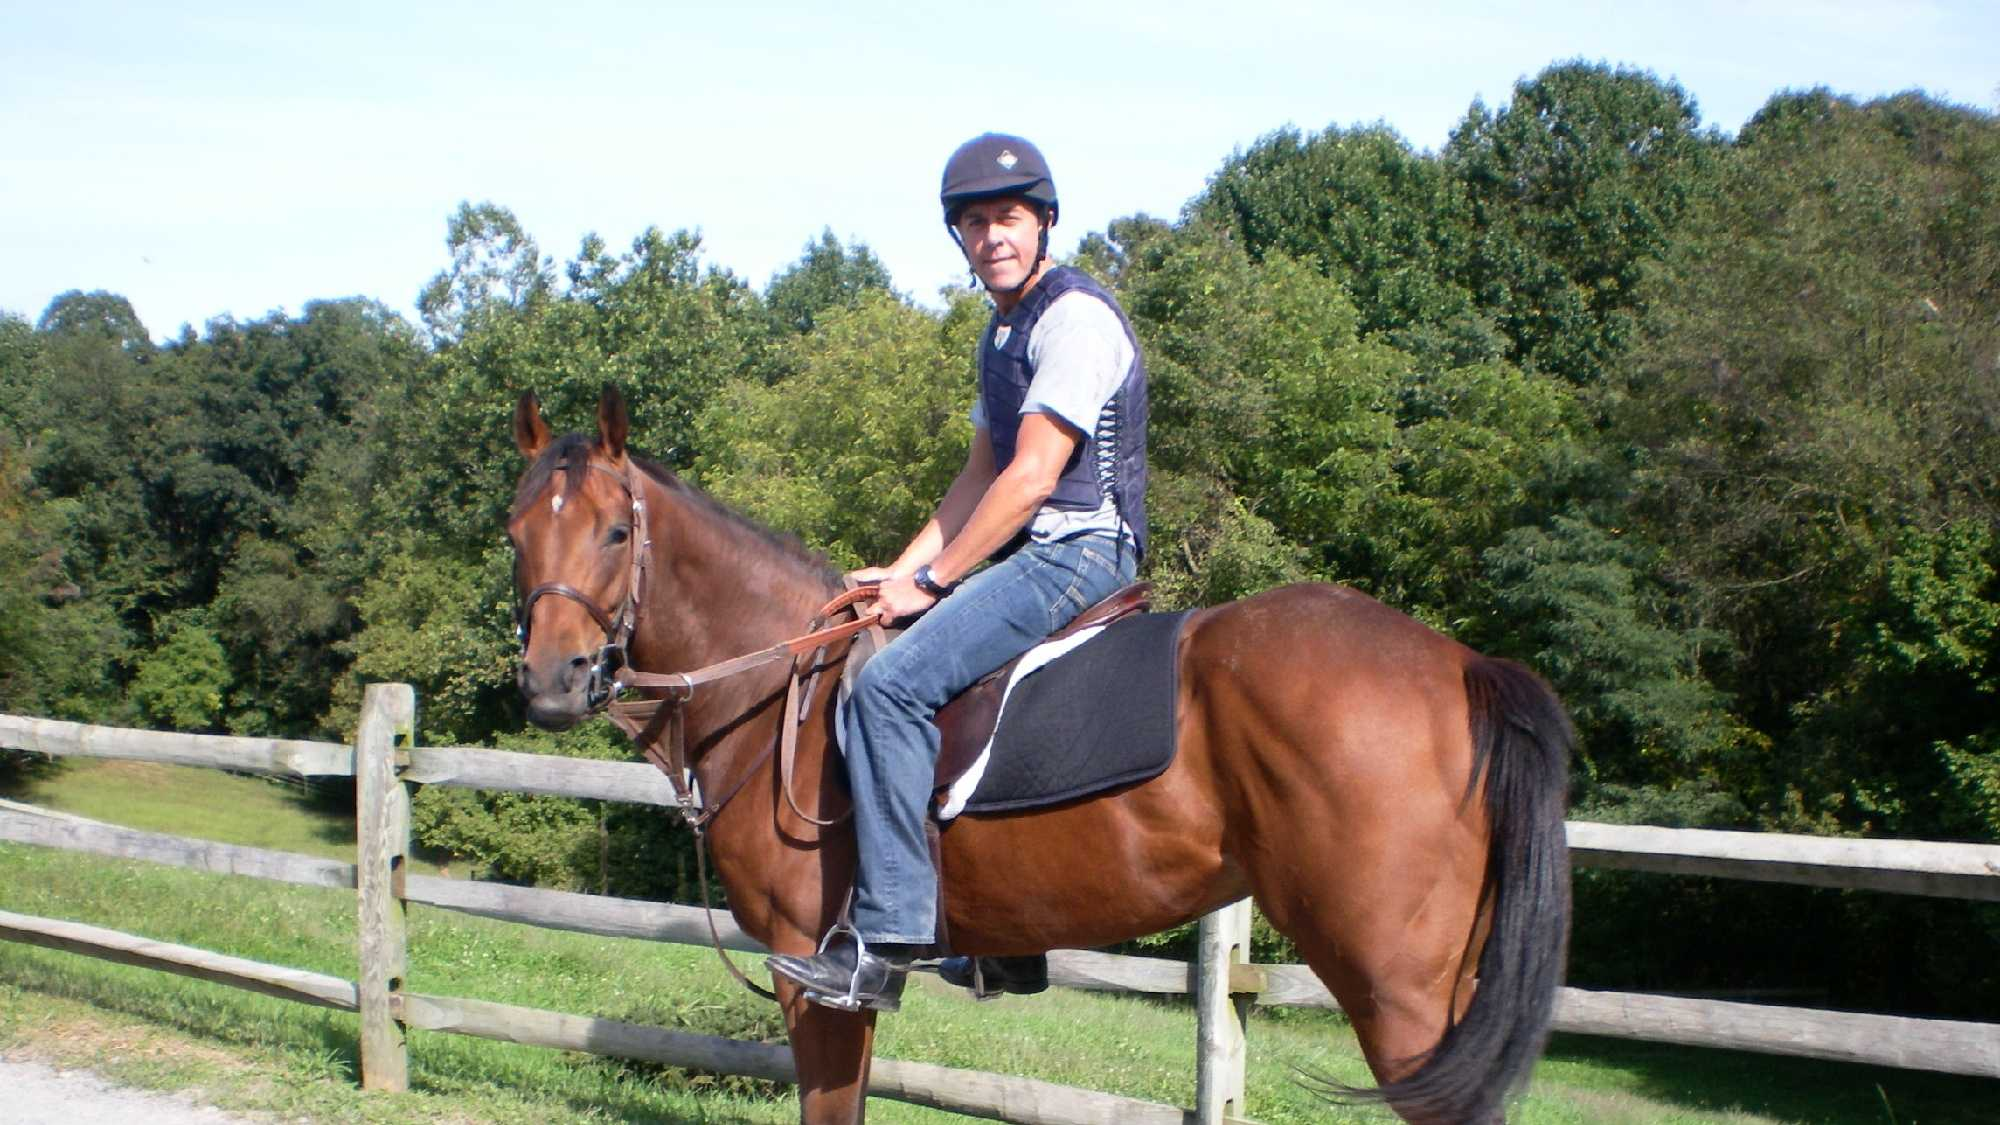 Brahma Fear and George Mallet at Breakaway Farm in Kirkwood, Pennsylvania shortly after Brahma's adoption in 2009.